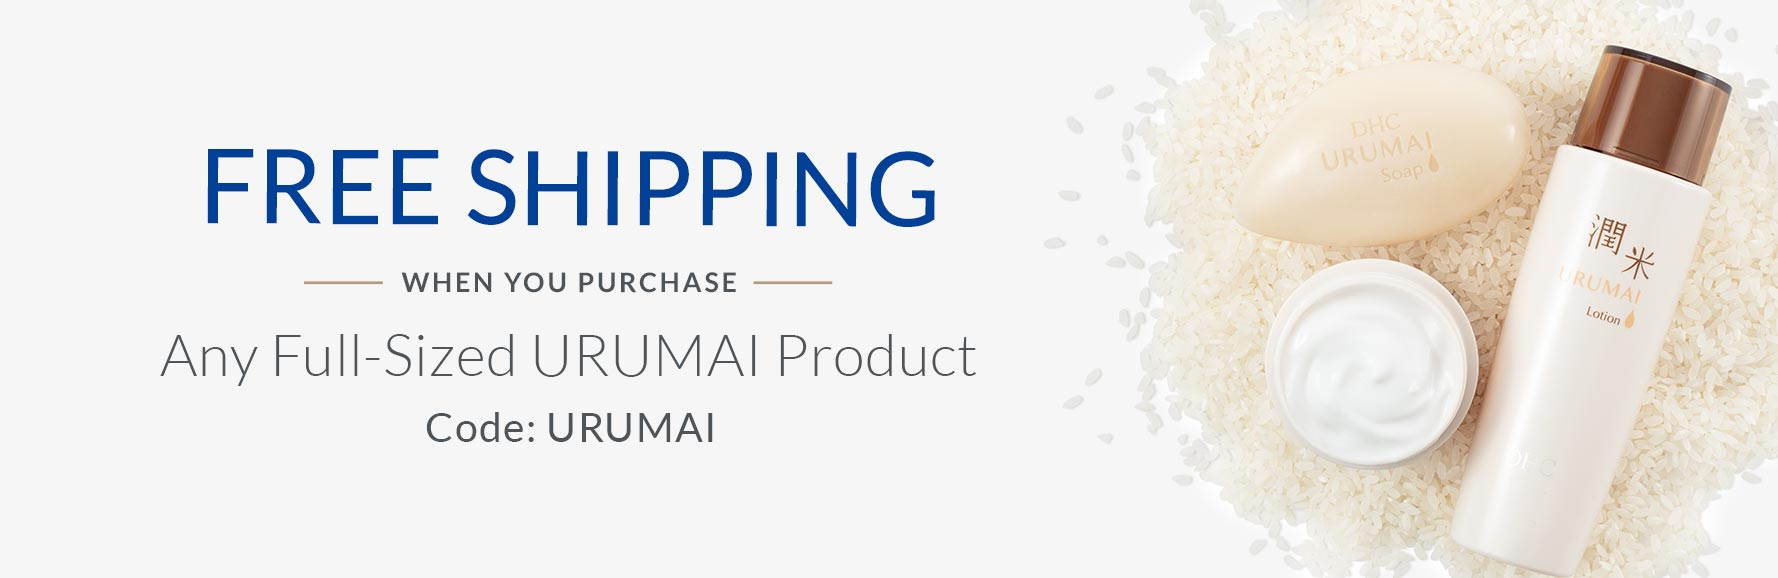 Discover Our Breakthrough Plant-Based Innovations. Free Shipping when you purchase any Urumai product. Shop Now.